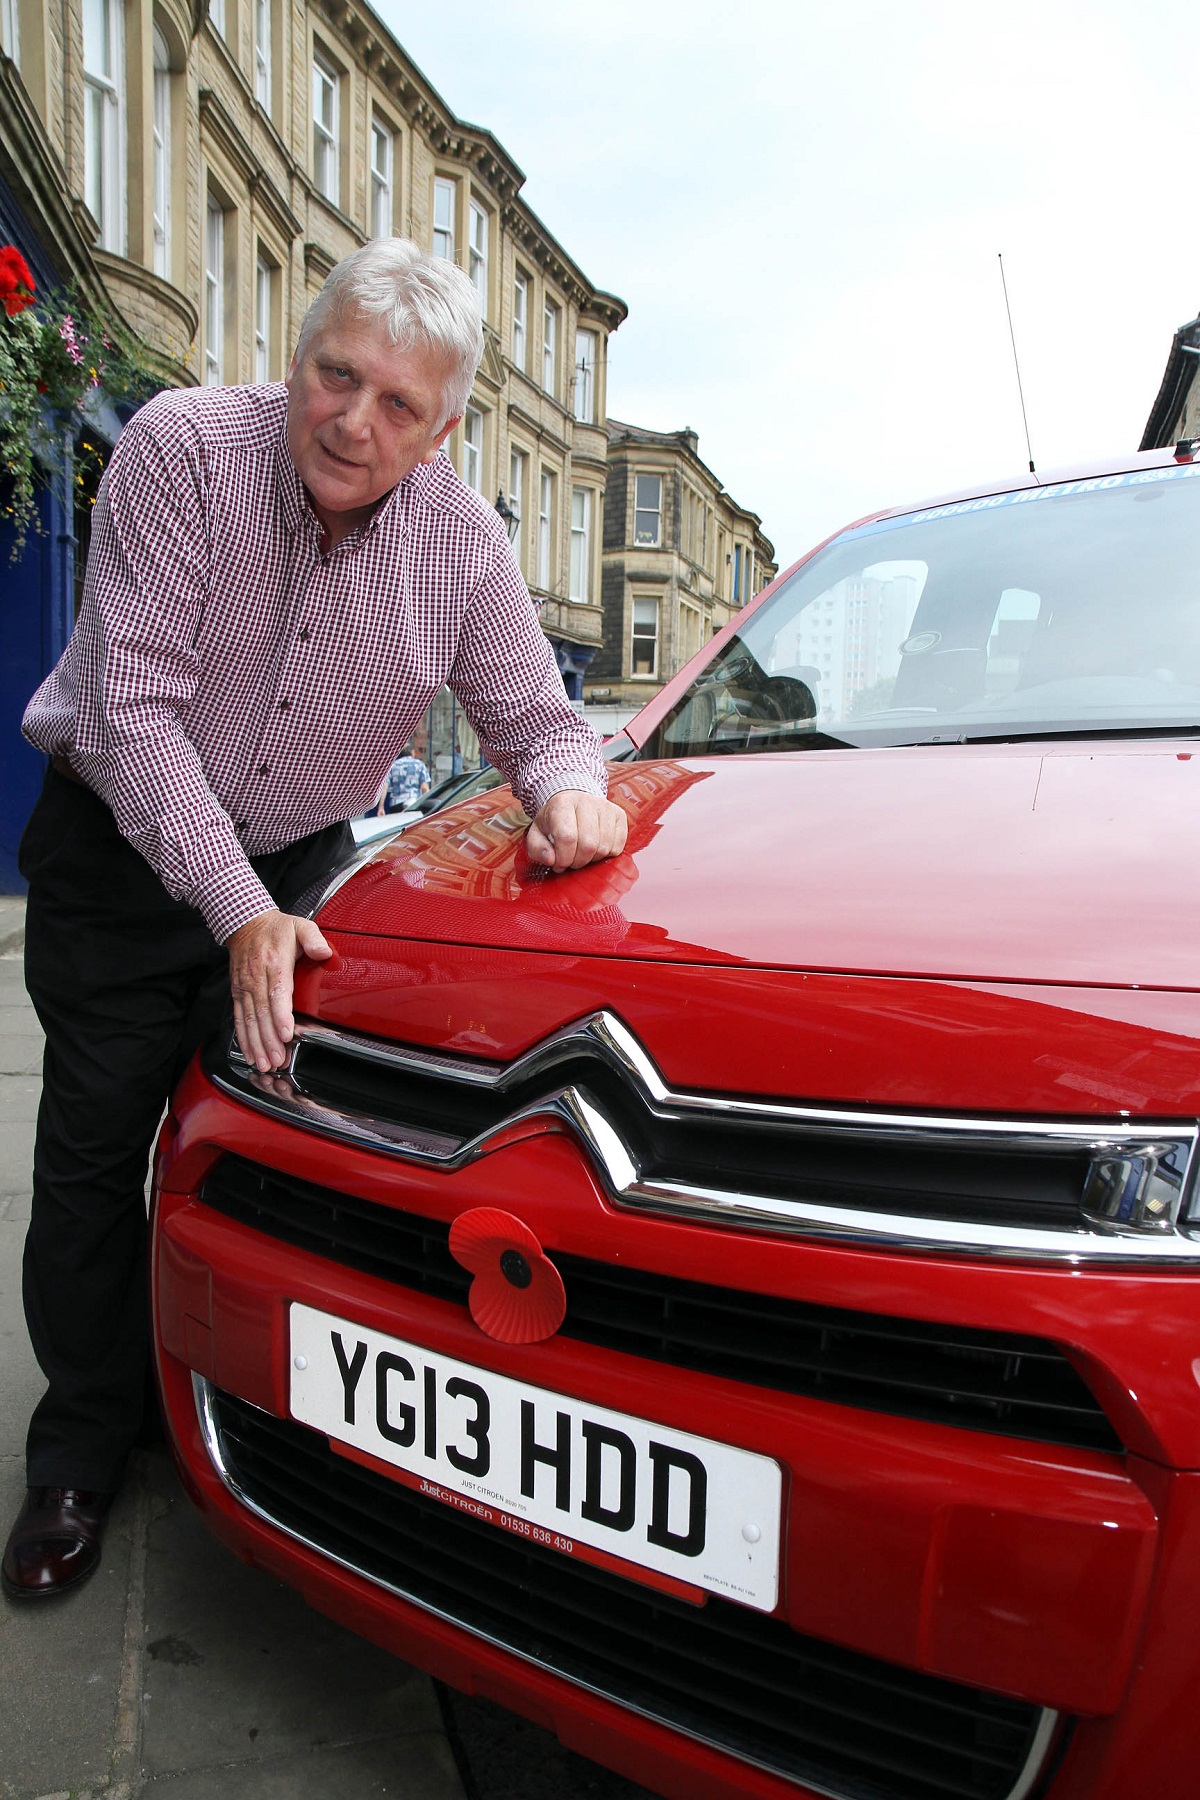 Taxi firm owner, Stuart Hastings, who has backed the council's licensing policy